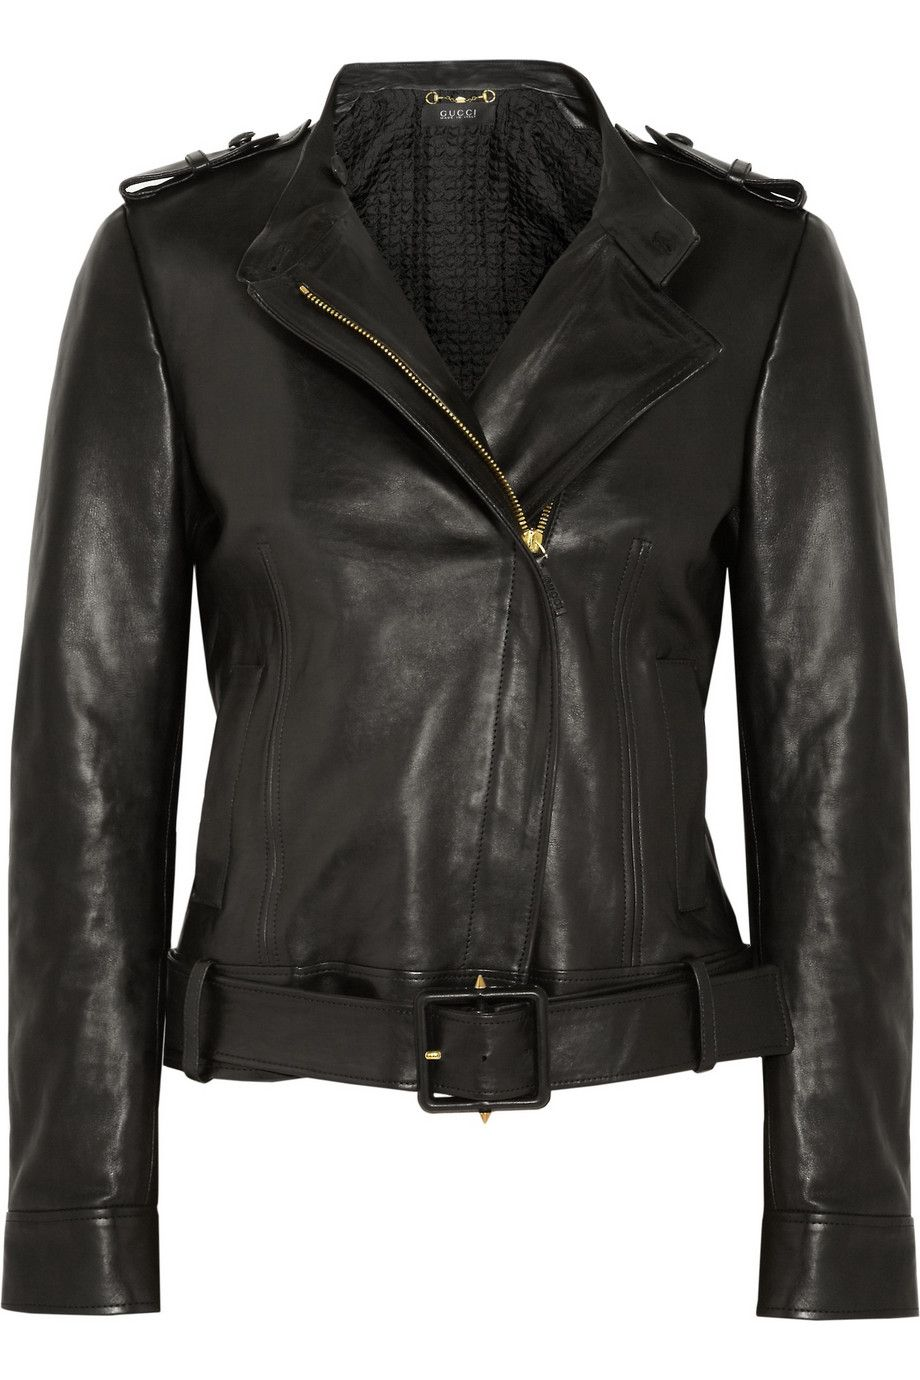 Gucci Belted polished leather jacket